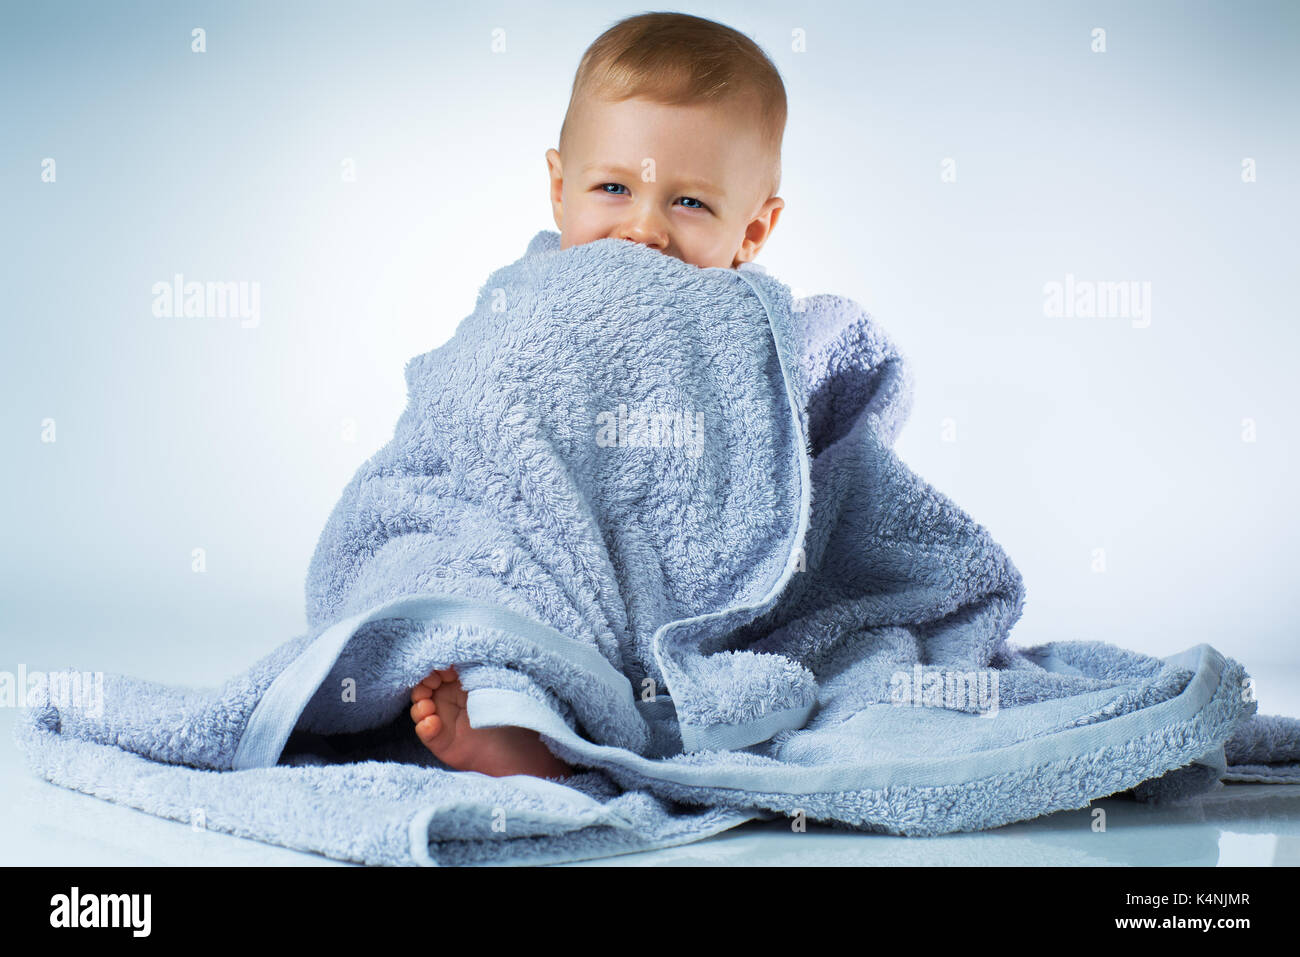 Baby 4 Monate Sitzen After Eight Stockfotos And After Eight Bilder Seite 2 Alamy